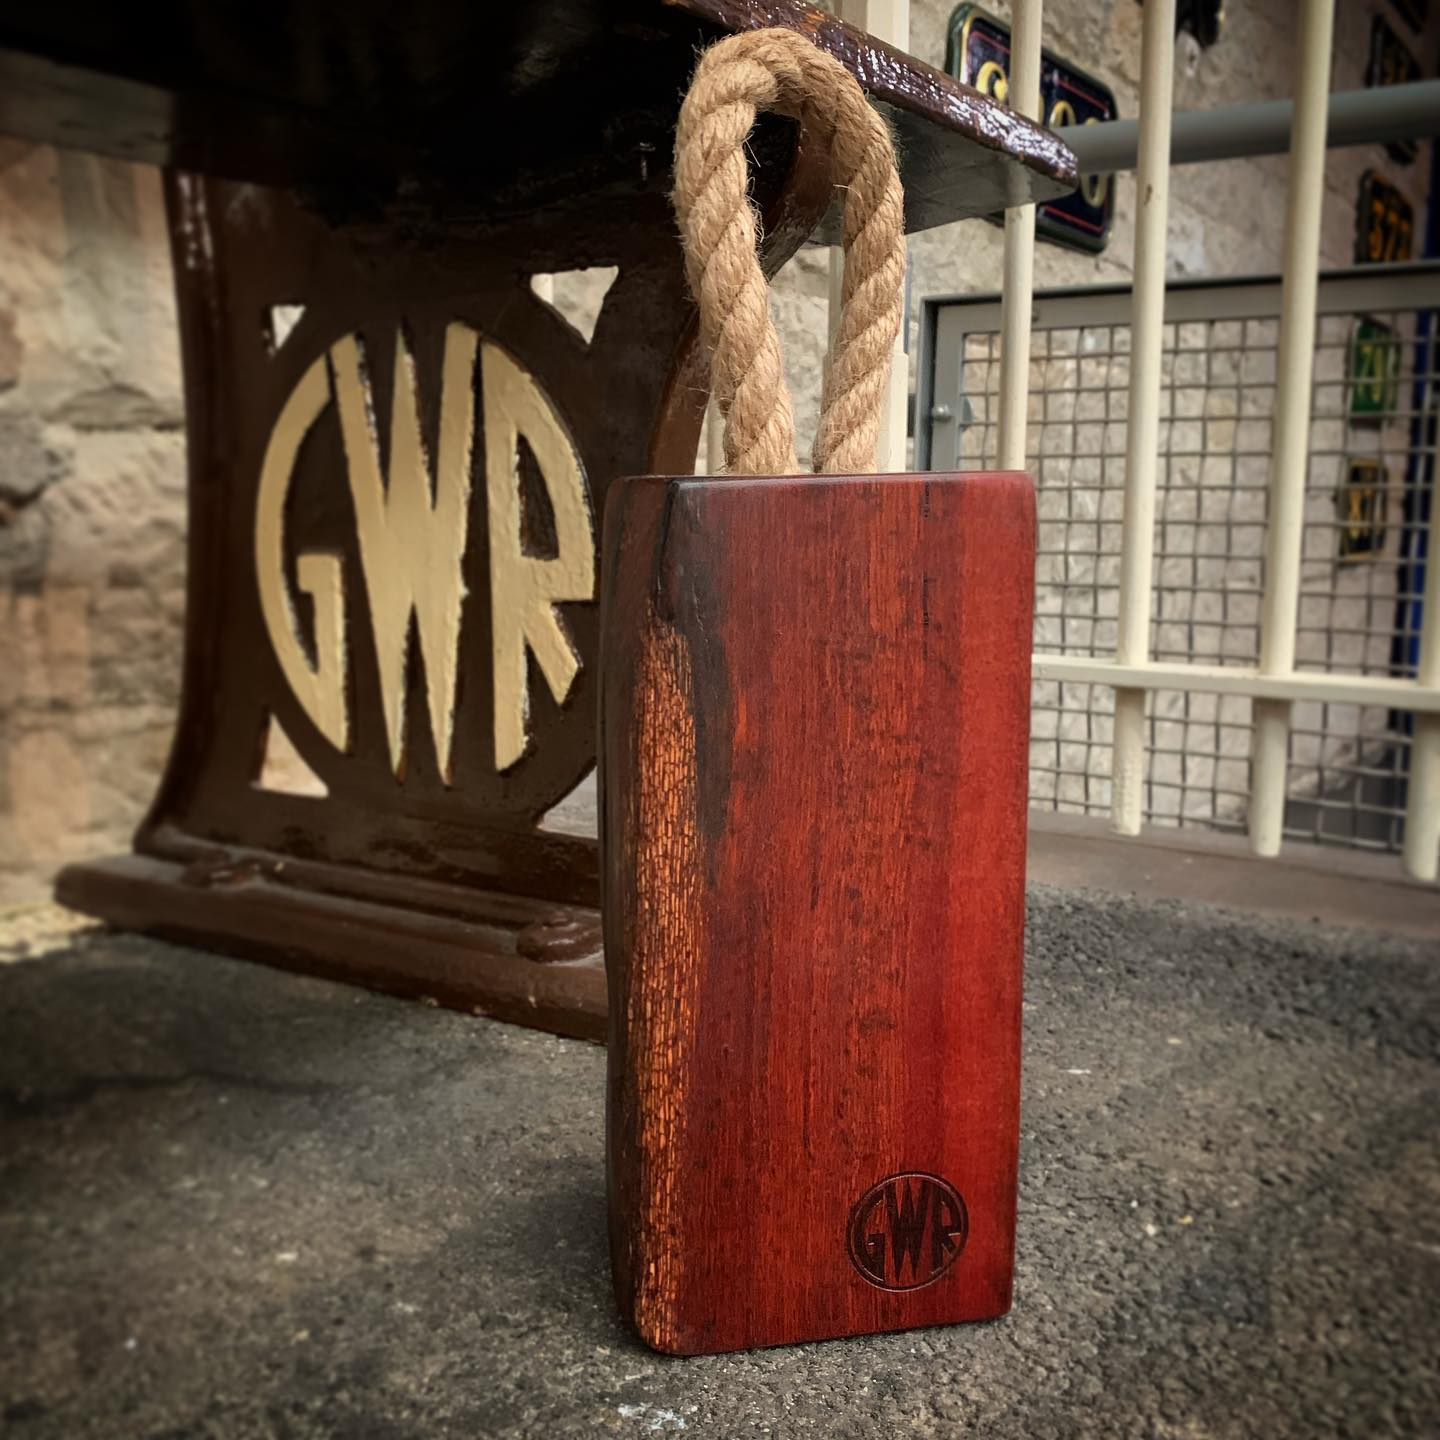 A limited number of these Jarrah GWR branded doorstops are now available at the @steammuseum Swindon.They are beautifully characterful, with holes and marks reminiscent of their former life beneath machinery for the Great Western Railway.We can't get over the colour! Really special and a pleasure to produce. ...#handcrafted #history #railway #gwr #steammuseum #preservation #restoration